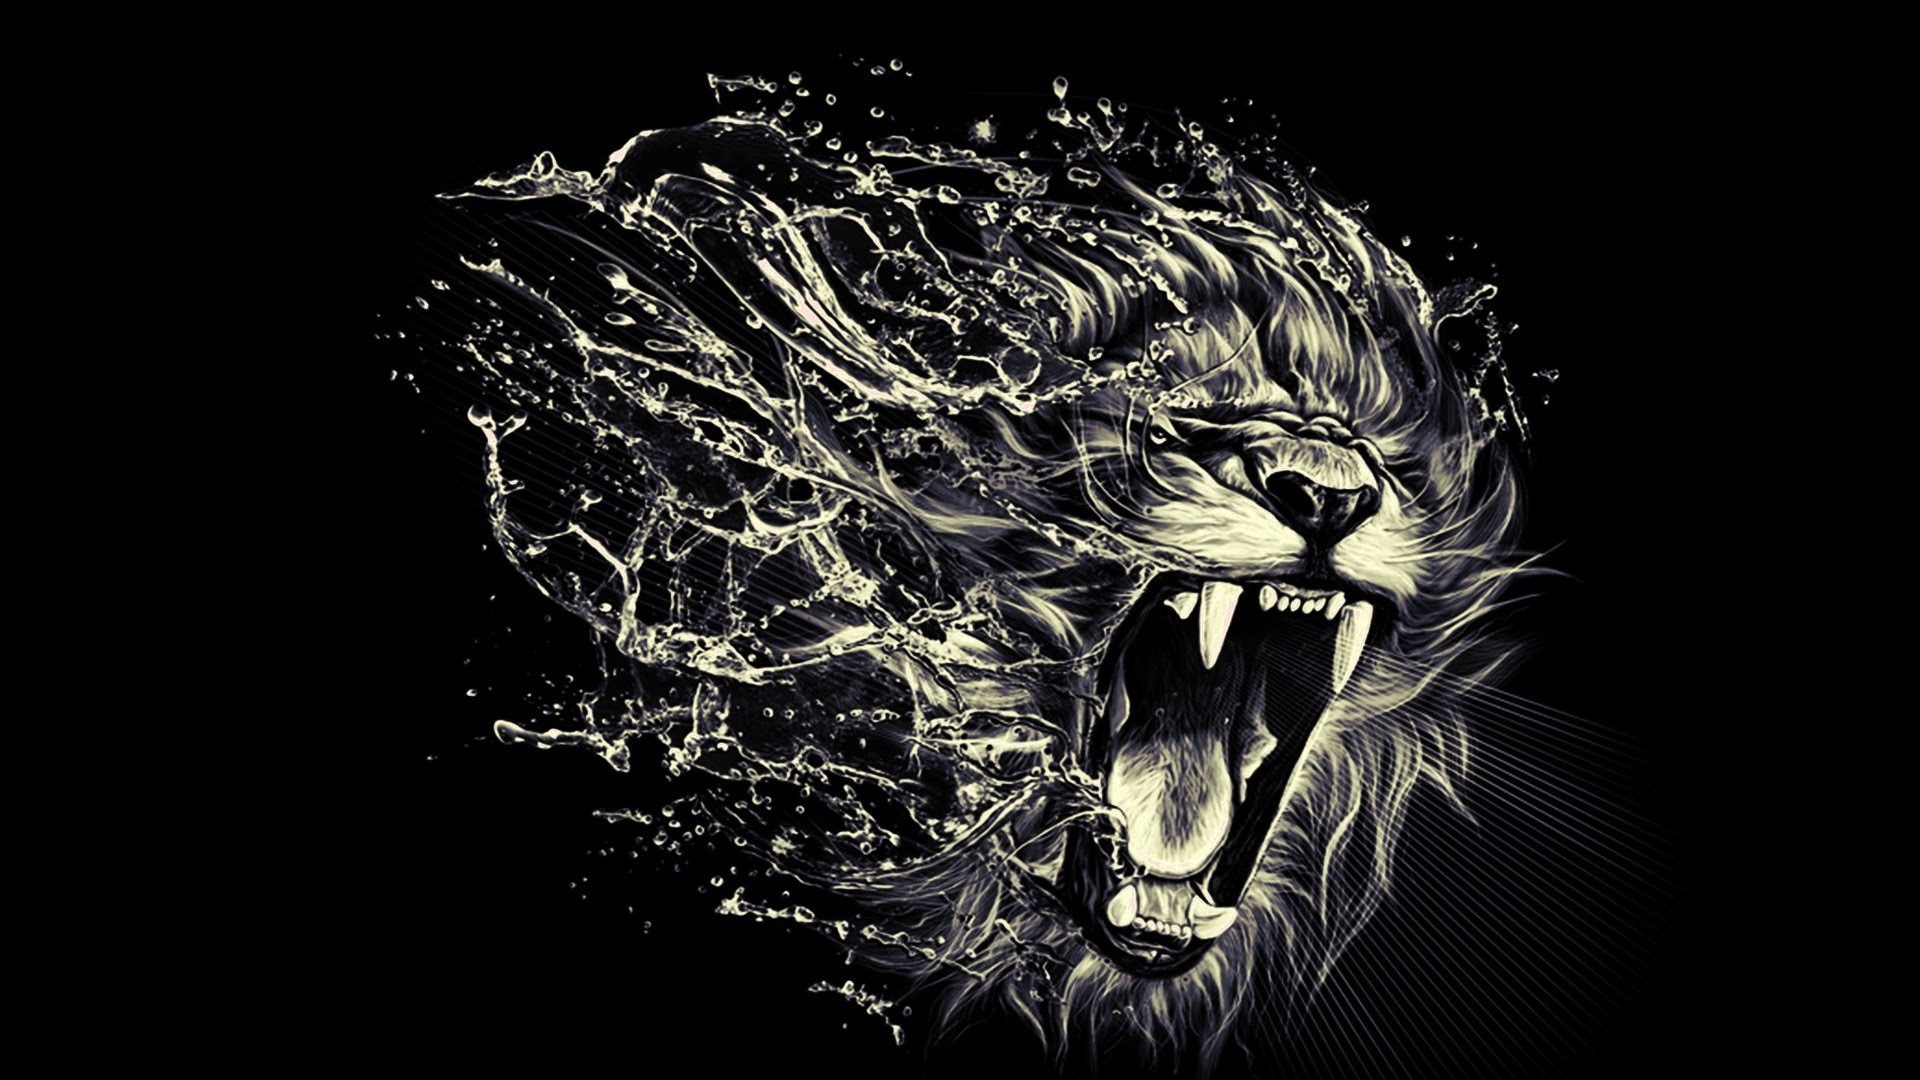 Best 25+ Lion hd wallpaper ideas on Pinterest | Lion images, Lion tattoo  images and Pretty phone wallpaper